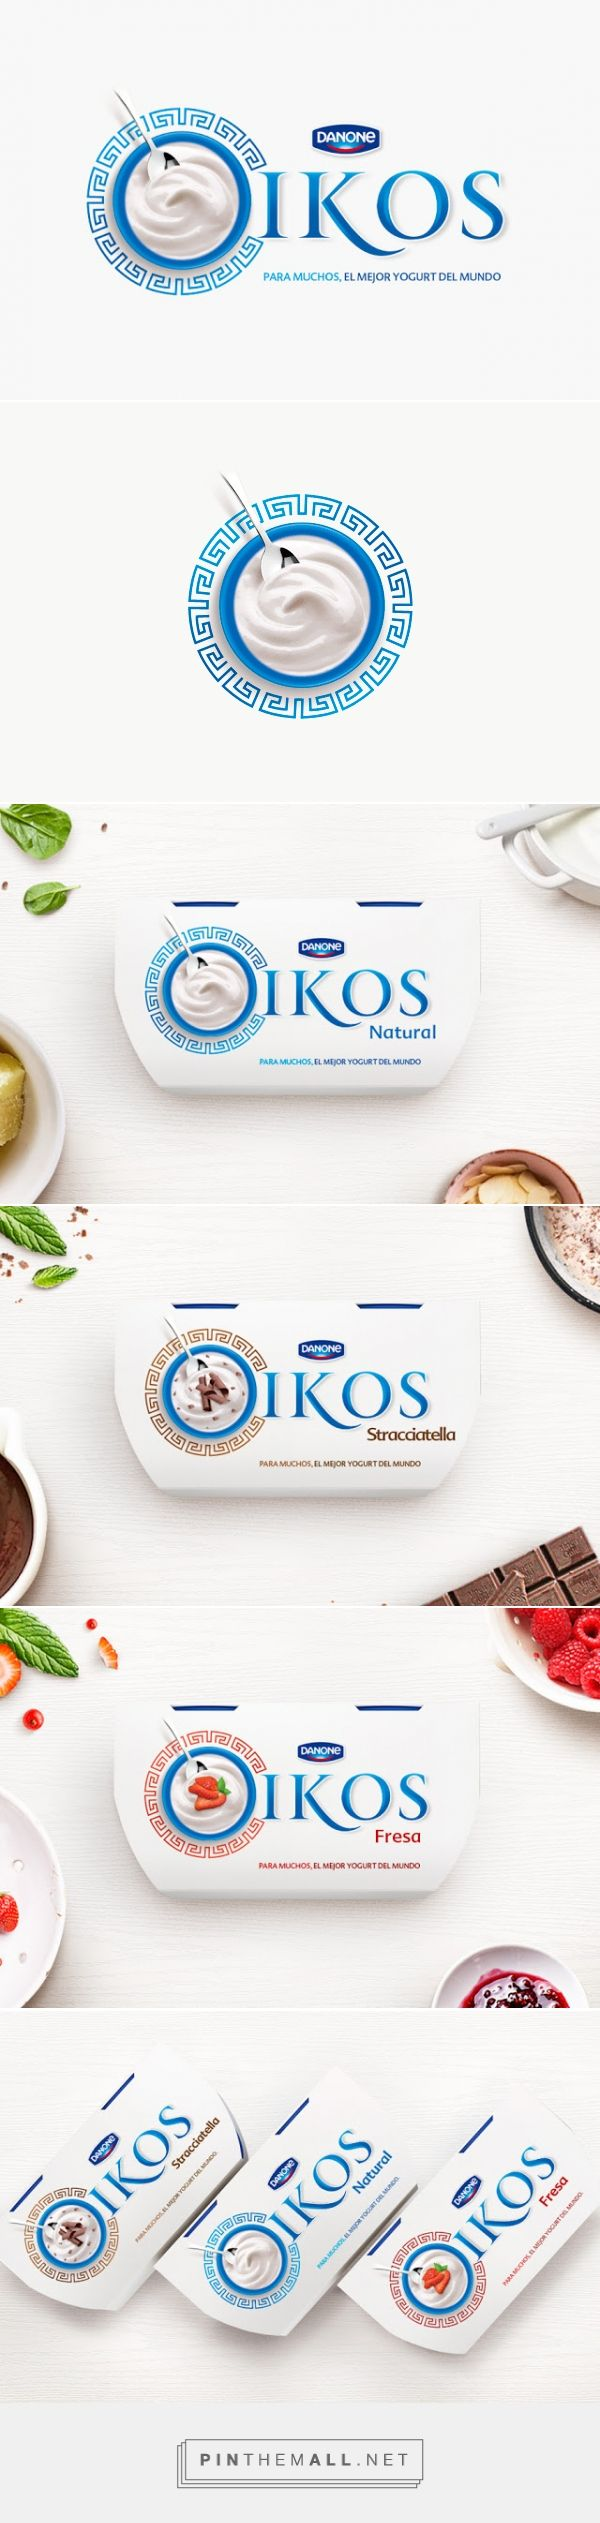 Danone Oikos #Yogurt #Concept by Diego Frayle & Maria Andrea Galindo - http://www.packagingoftheworld.com/2015/01/danone-oikos-student-project.html